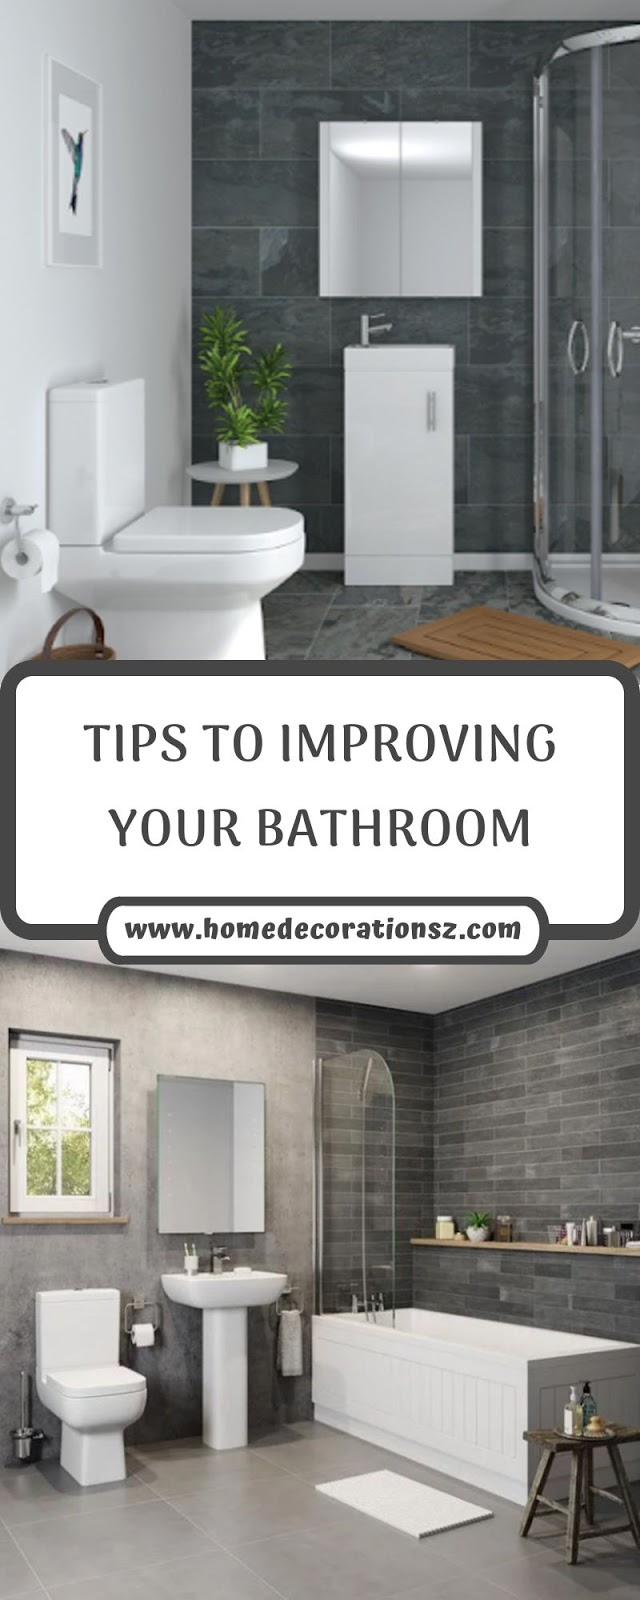 TIPS TO IMPROVING YOUR BATHROOM